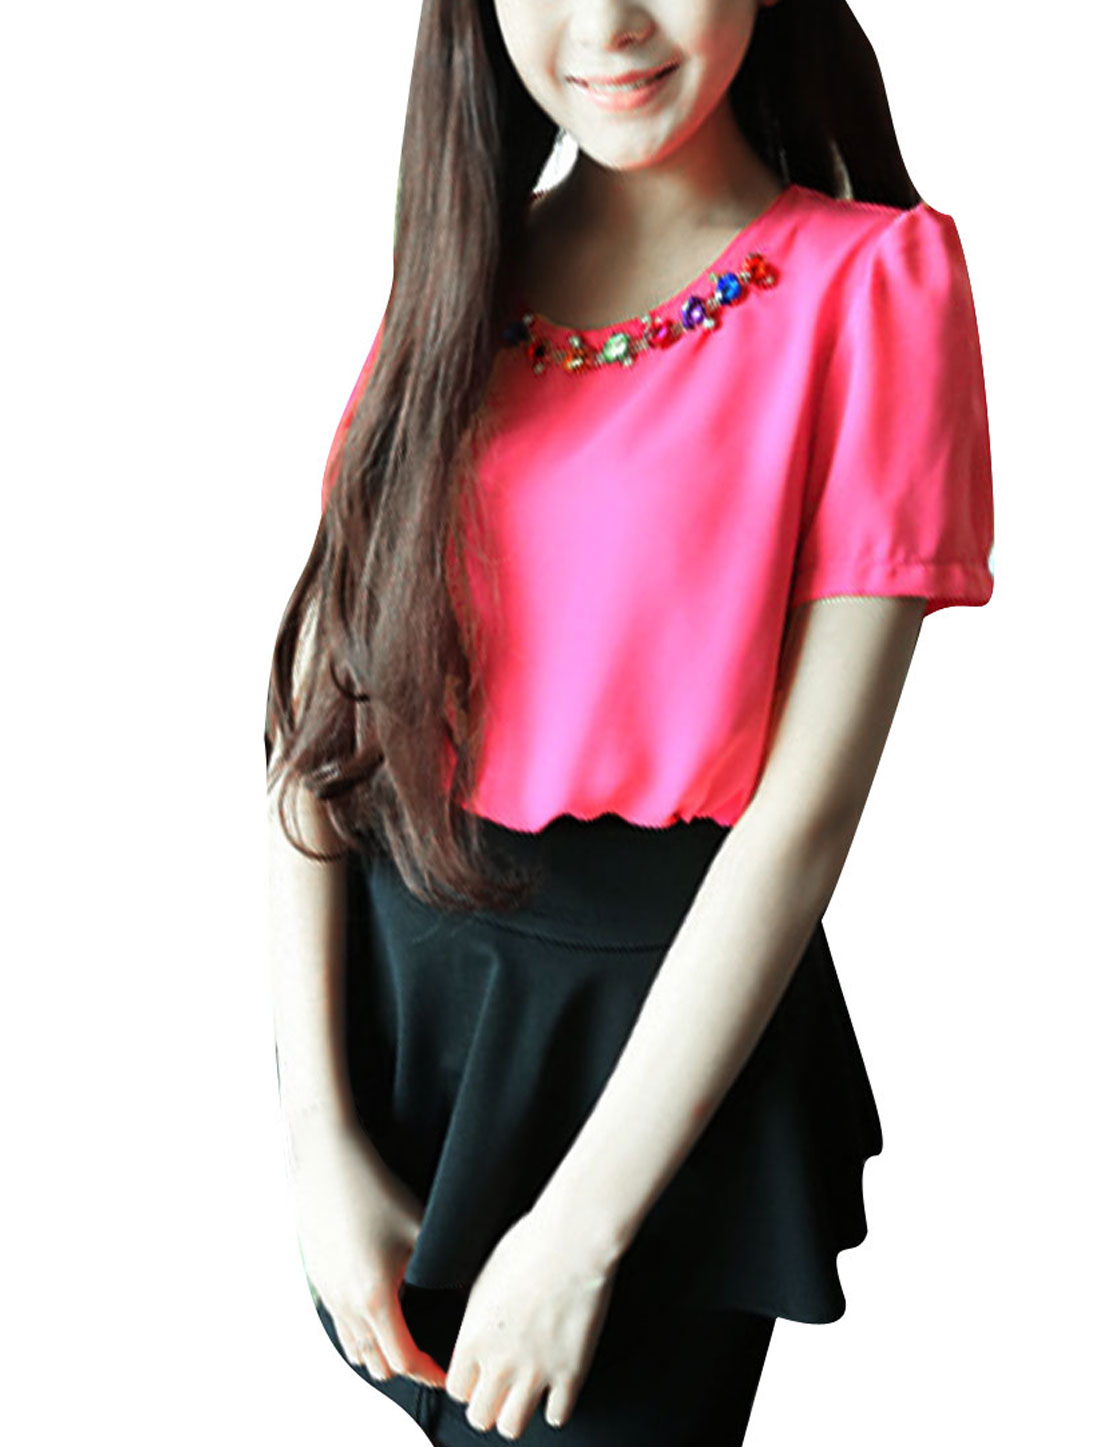 Ladies New Fashion Plastic Crystal Chain Decor Fuchsia Chiffon Blouse XS